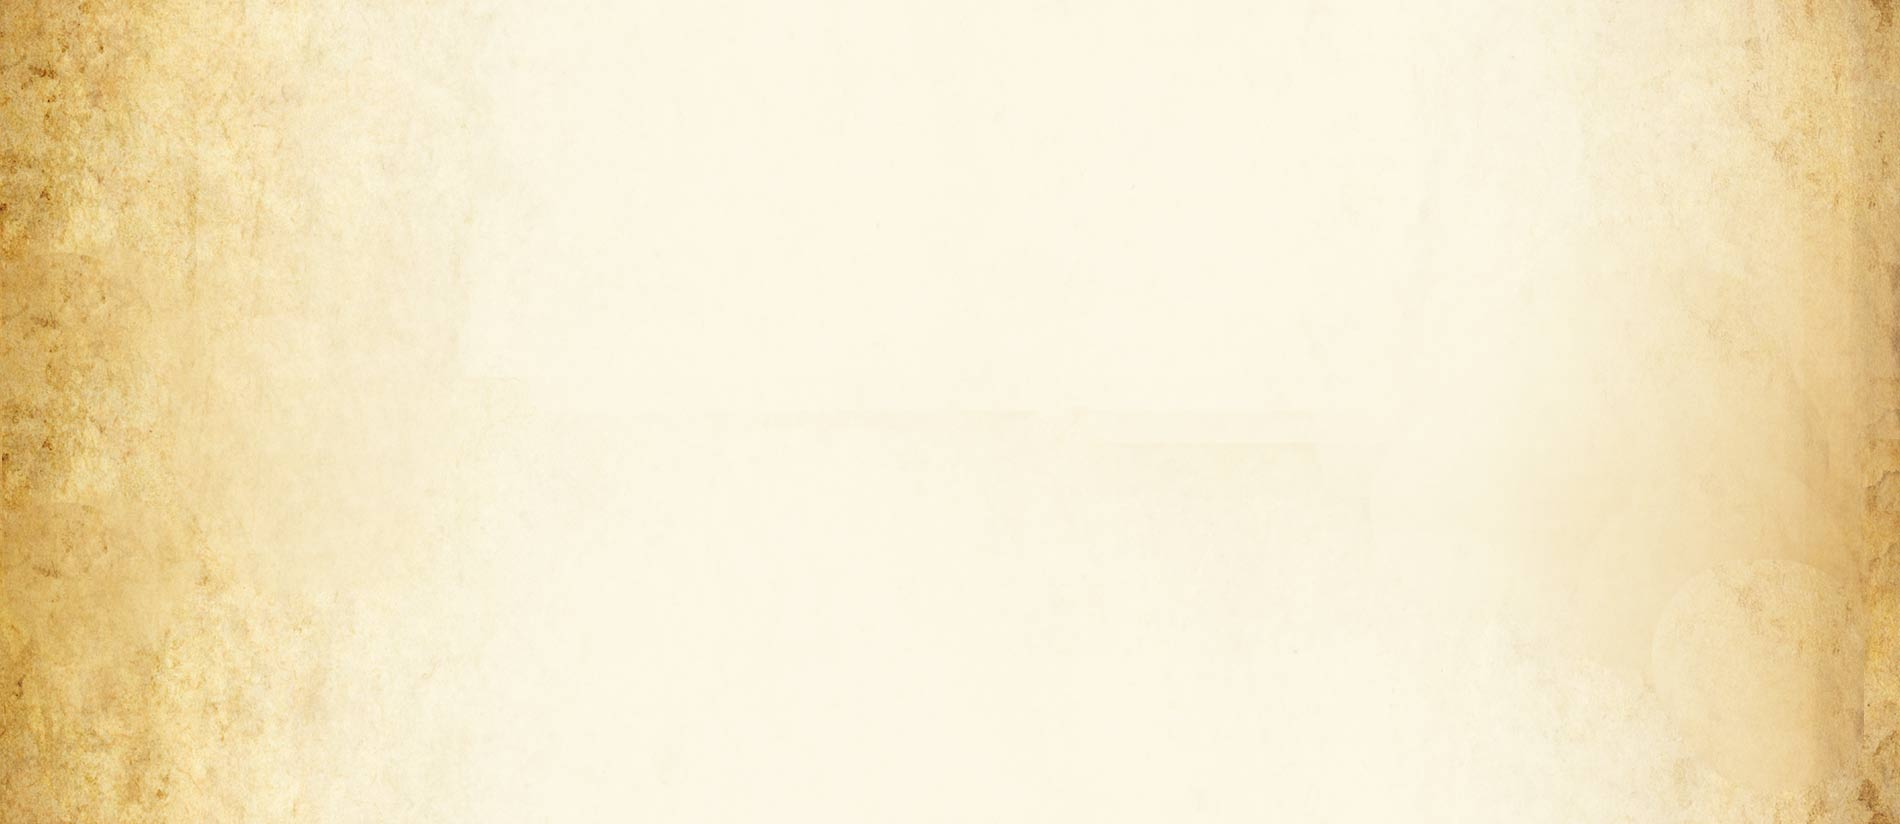 parchment-background.jpg